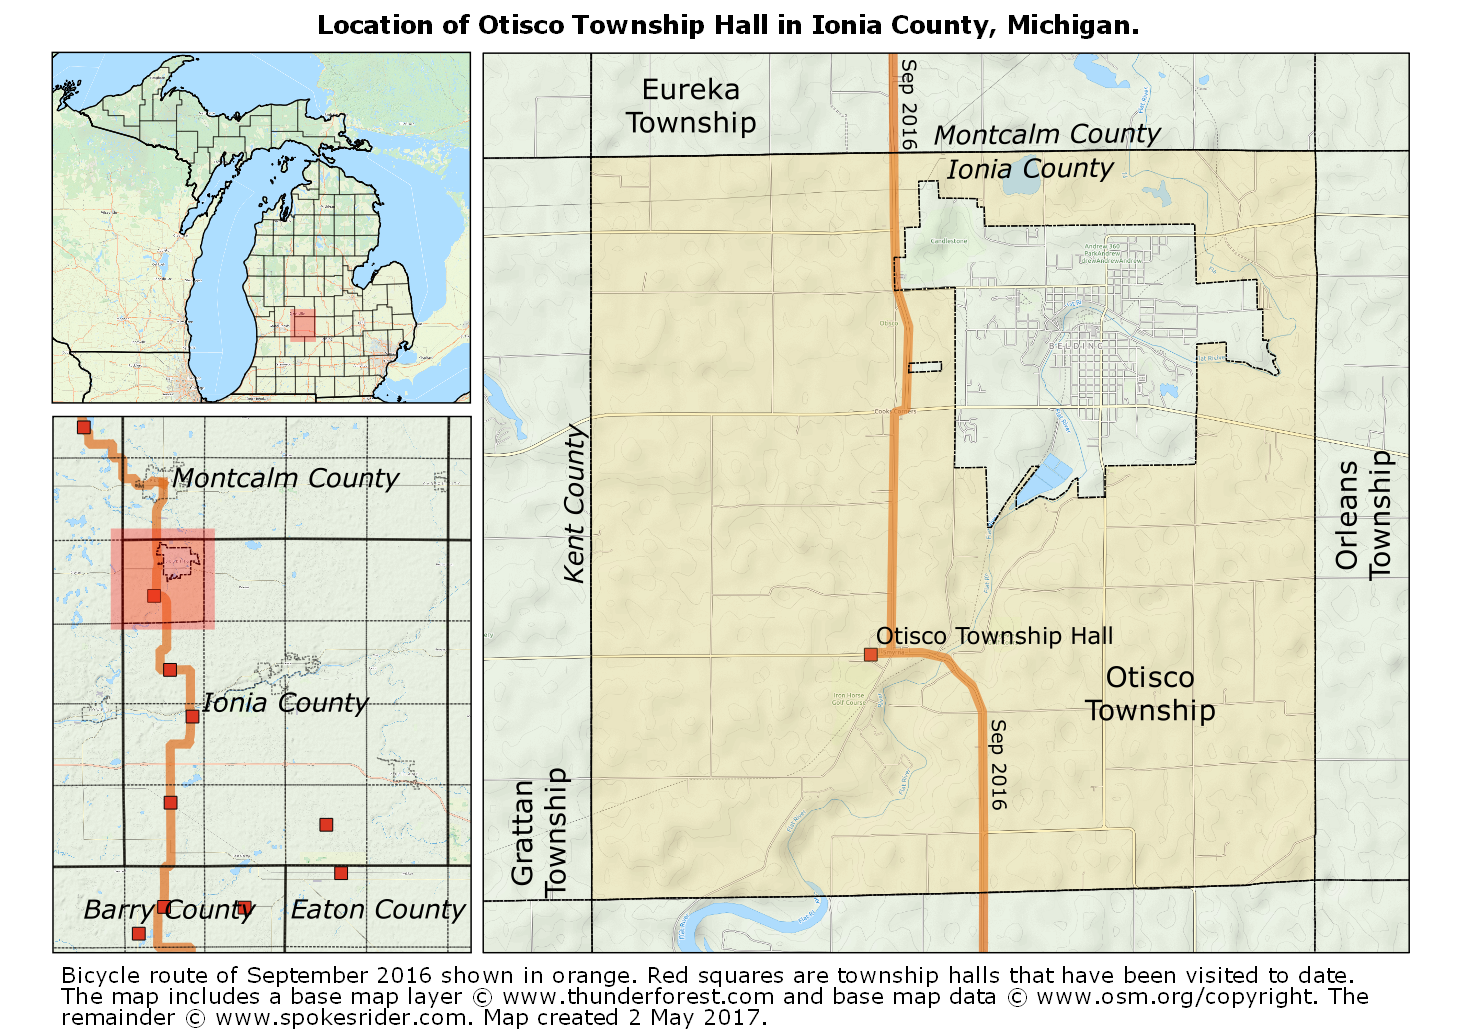 Map showing the location of Otisco Township Hall in Otisco Township, Ionia County, Michigan